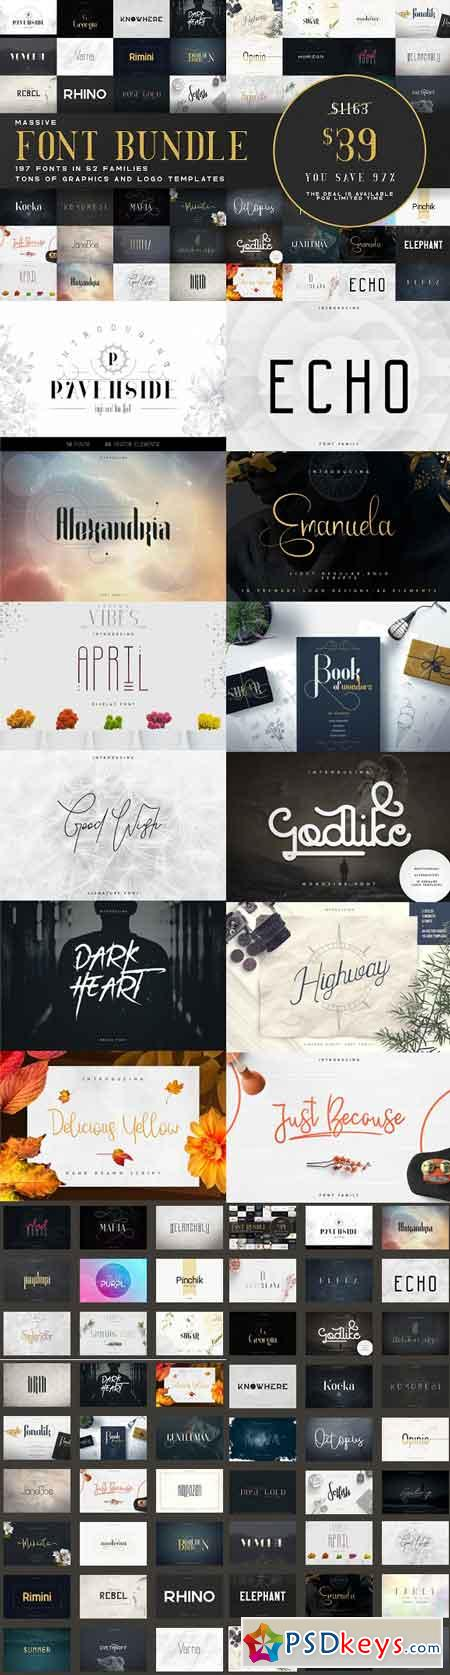 Massive Font Bundle - 197 fonts 3037602